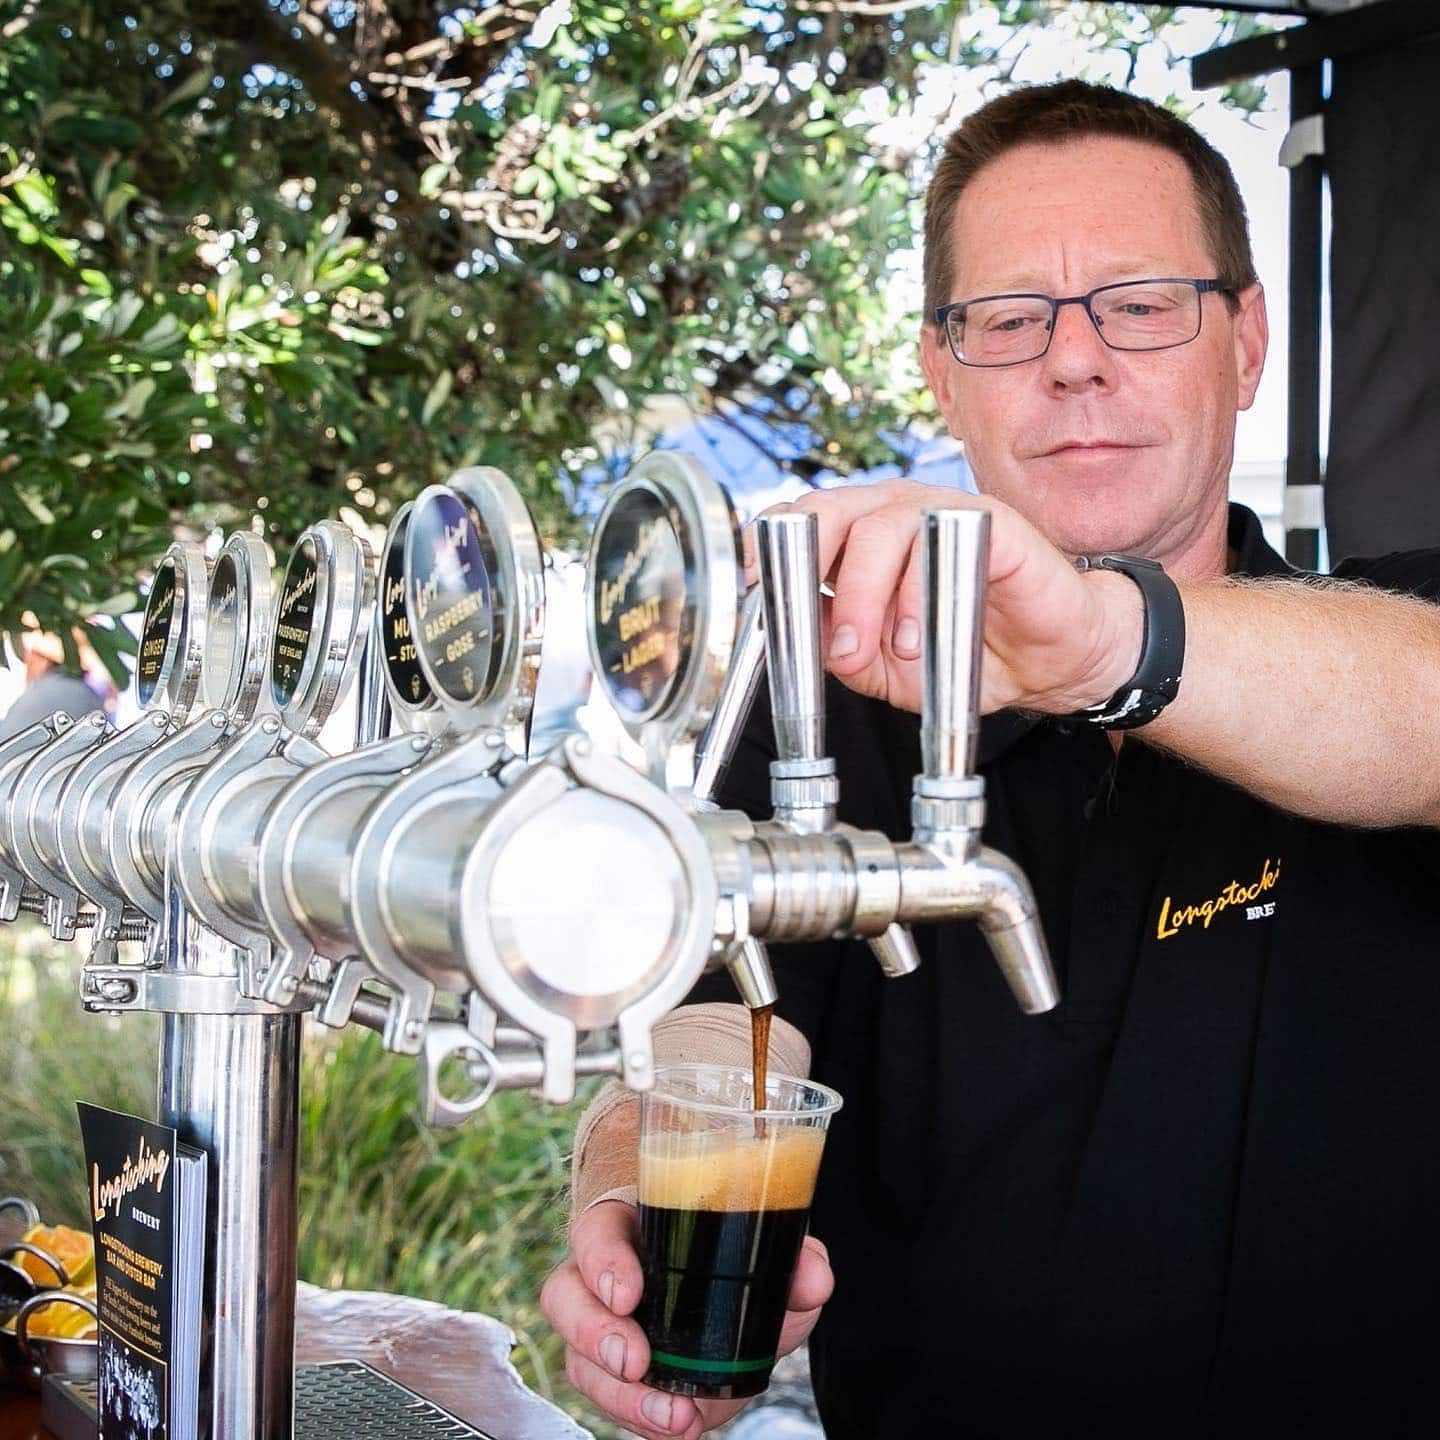 Peter Caldwell of Longstocking Brewery pours a beer.